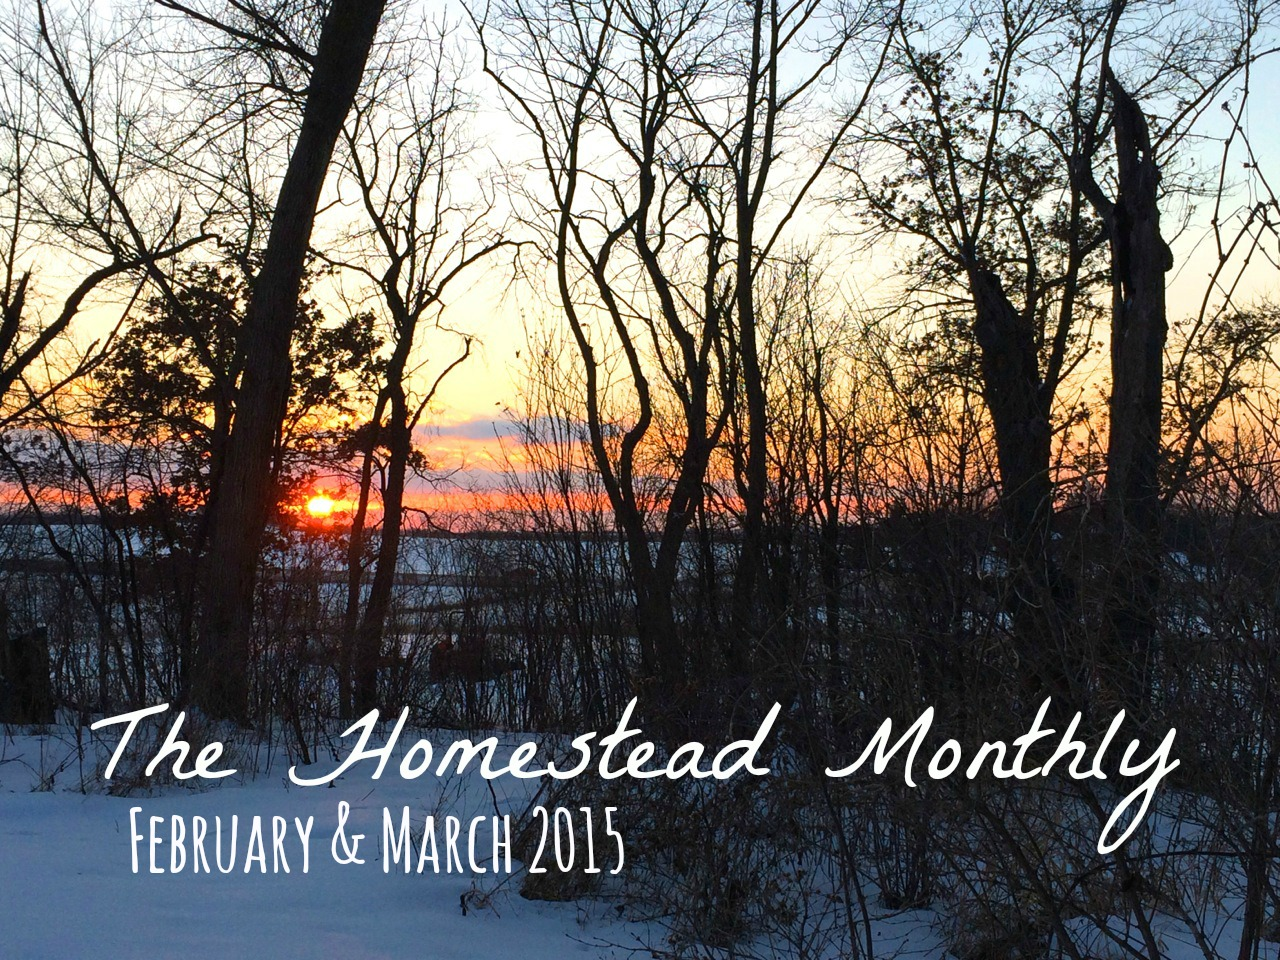 The Homestead Monthly: February & March